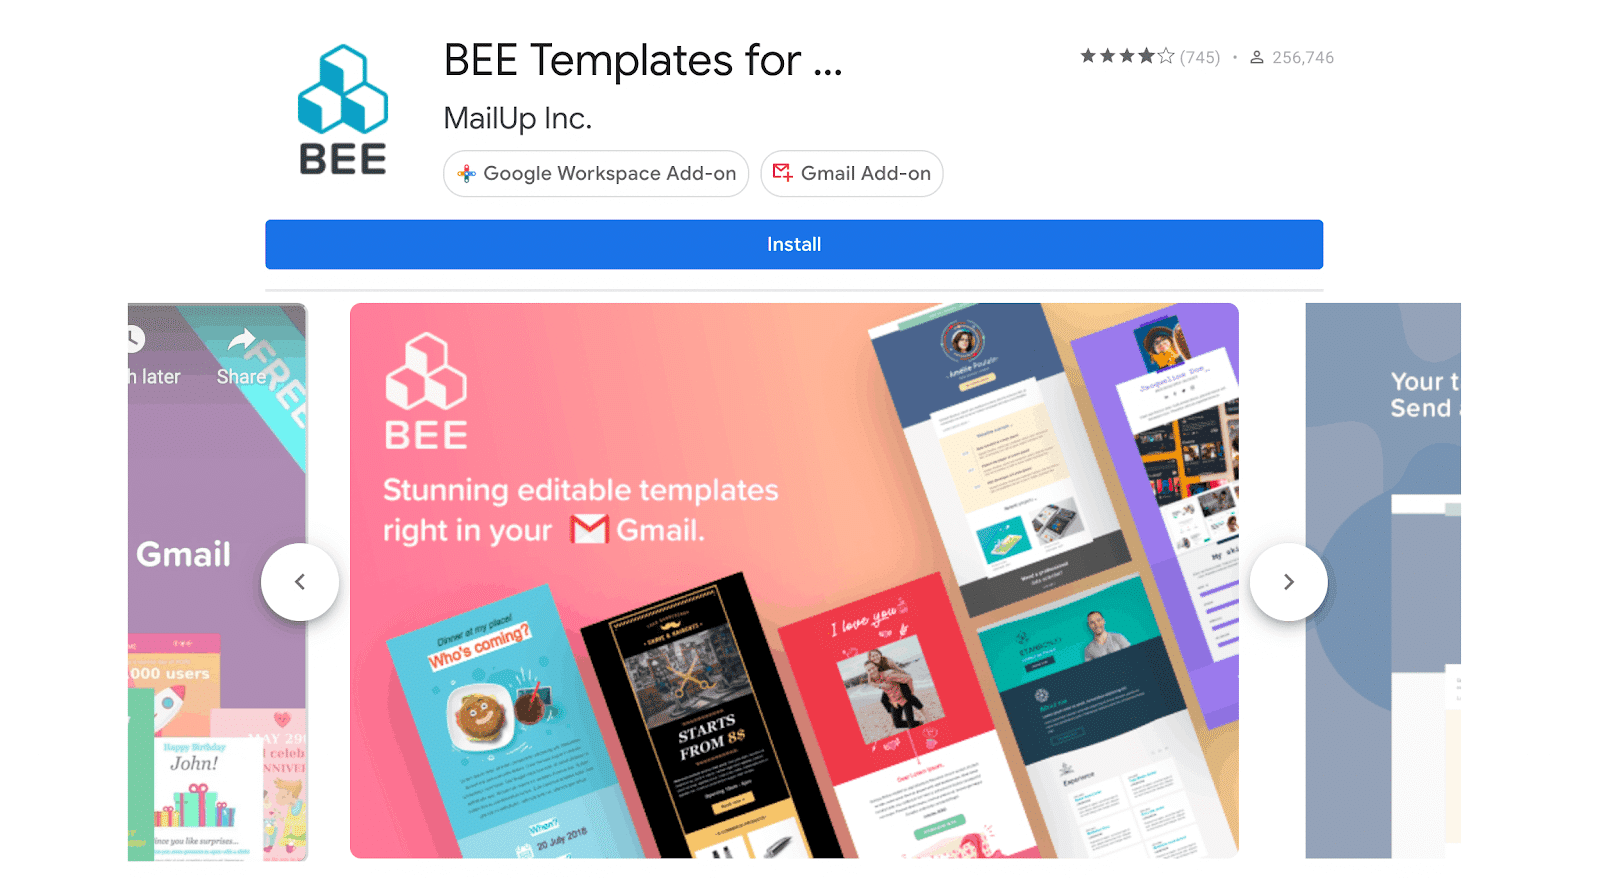 importing beefree templates into gmail